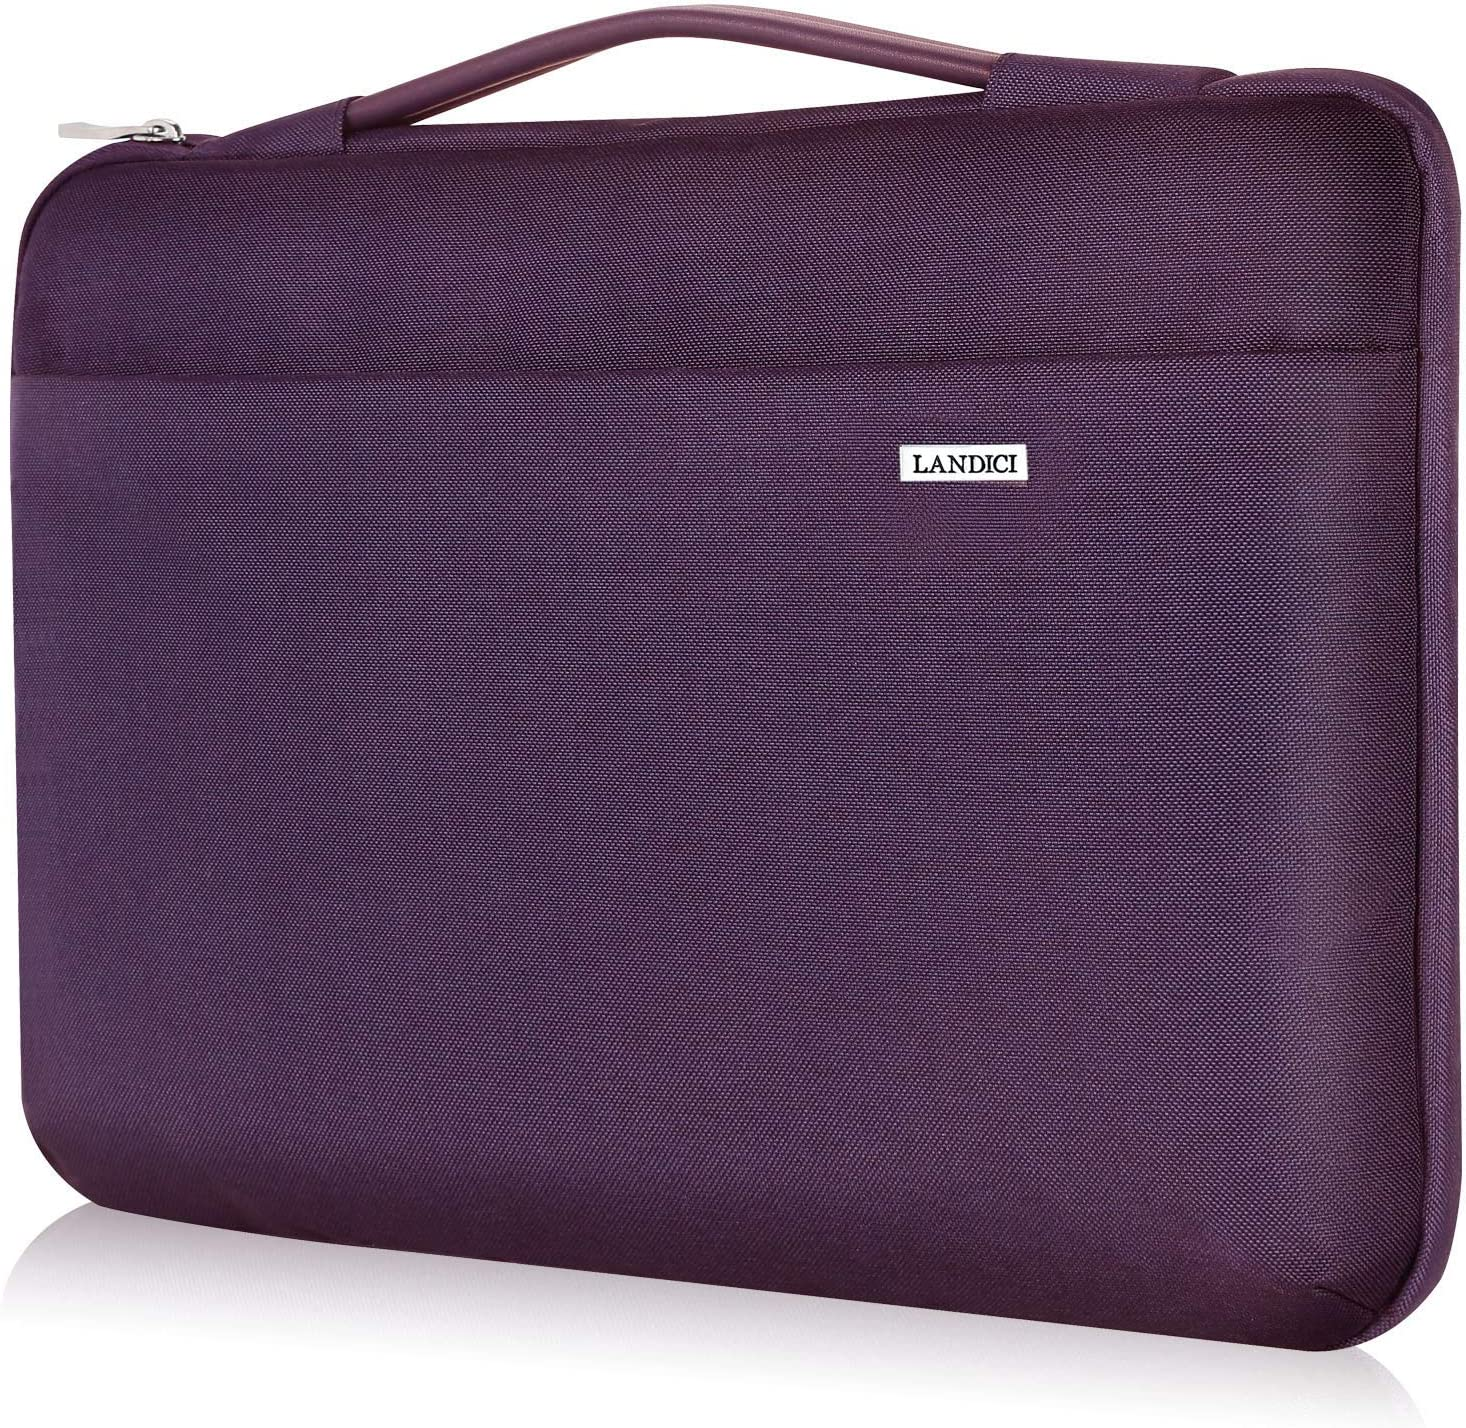 Landici Laptop Sleeve 14 15 15.6 Inch 360 Protective Carrying Case Compatible with 15 Inch Old MacBook Pro,New Ideapad S145,15